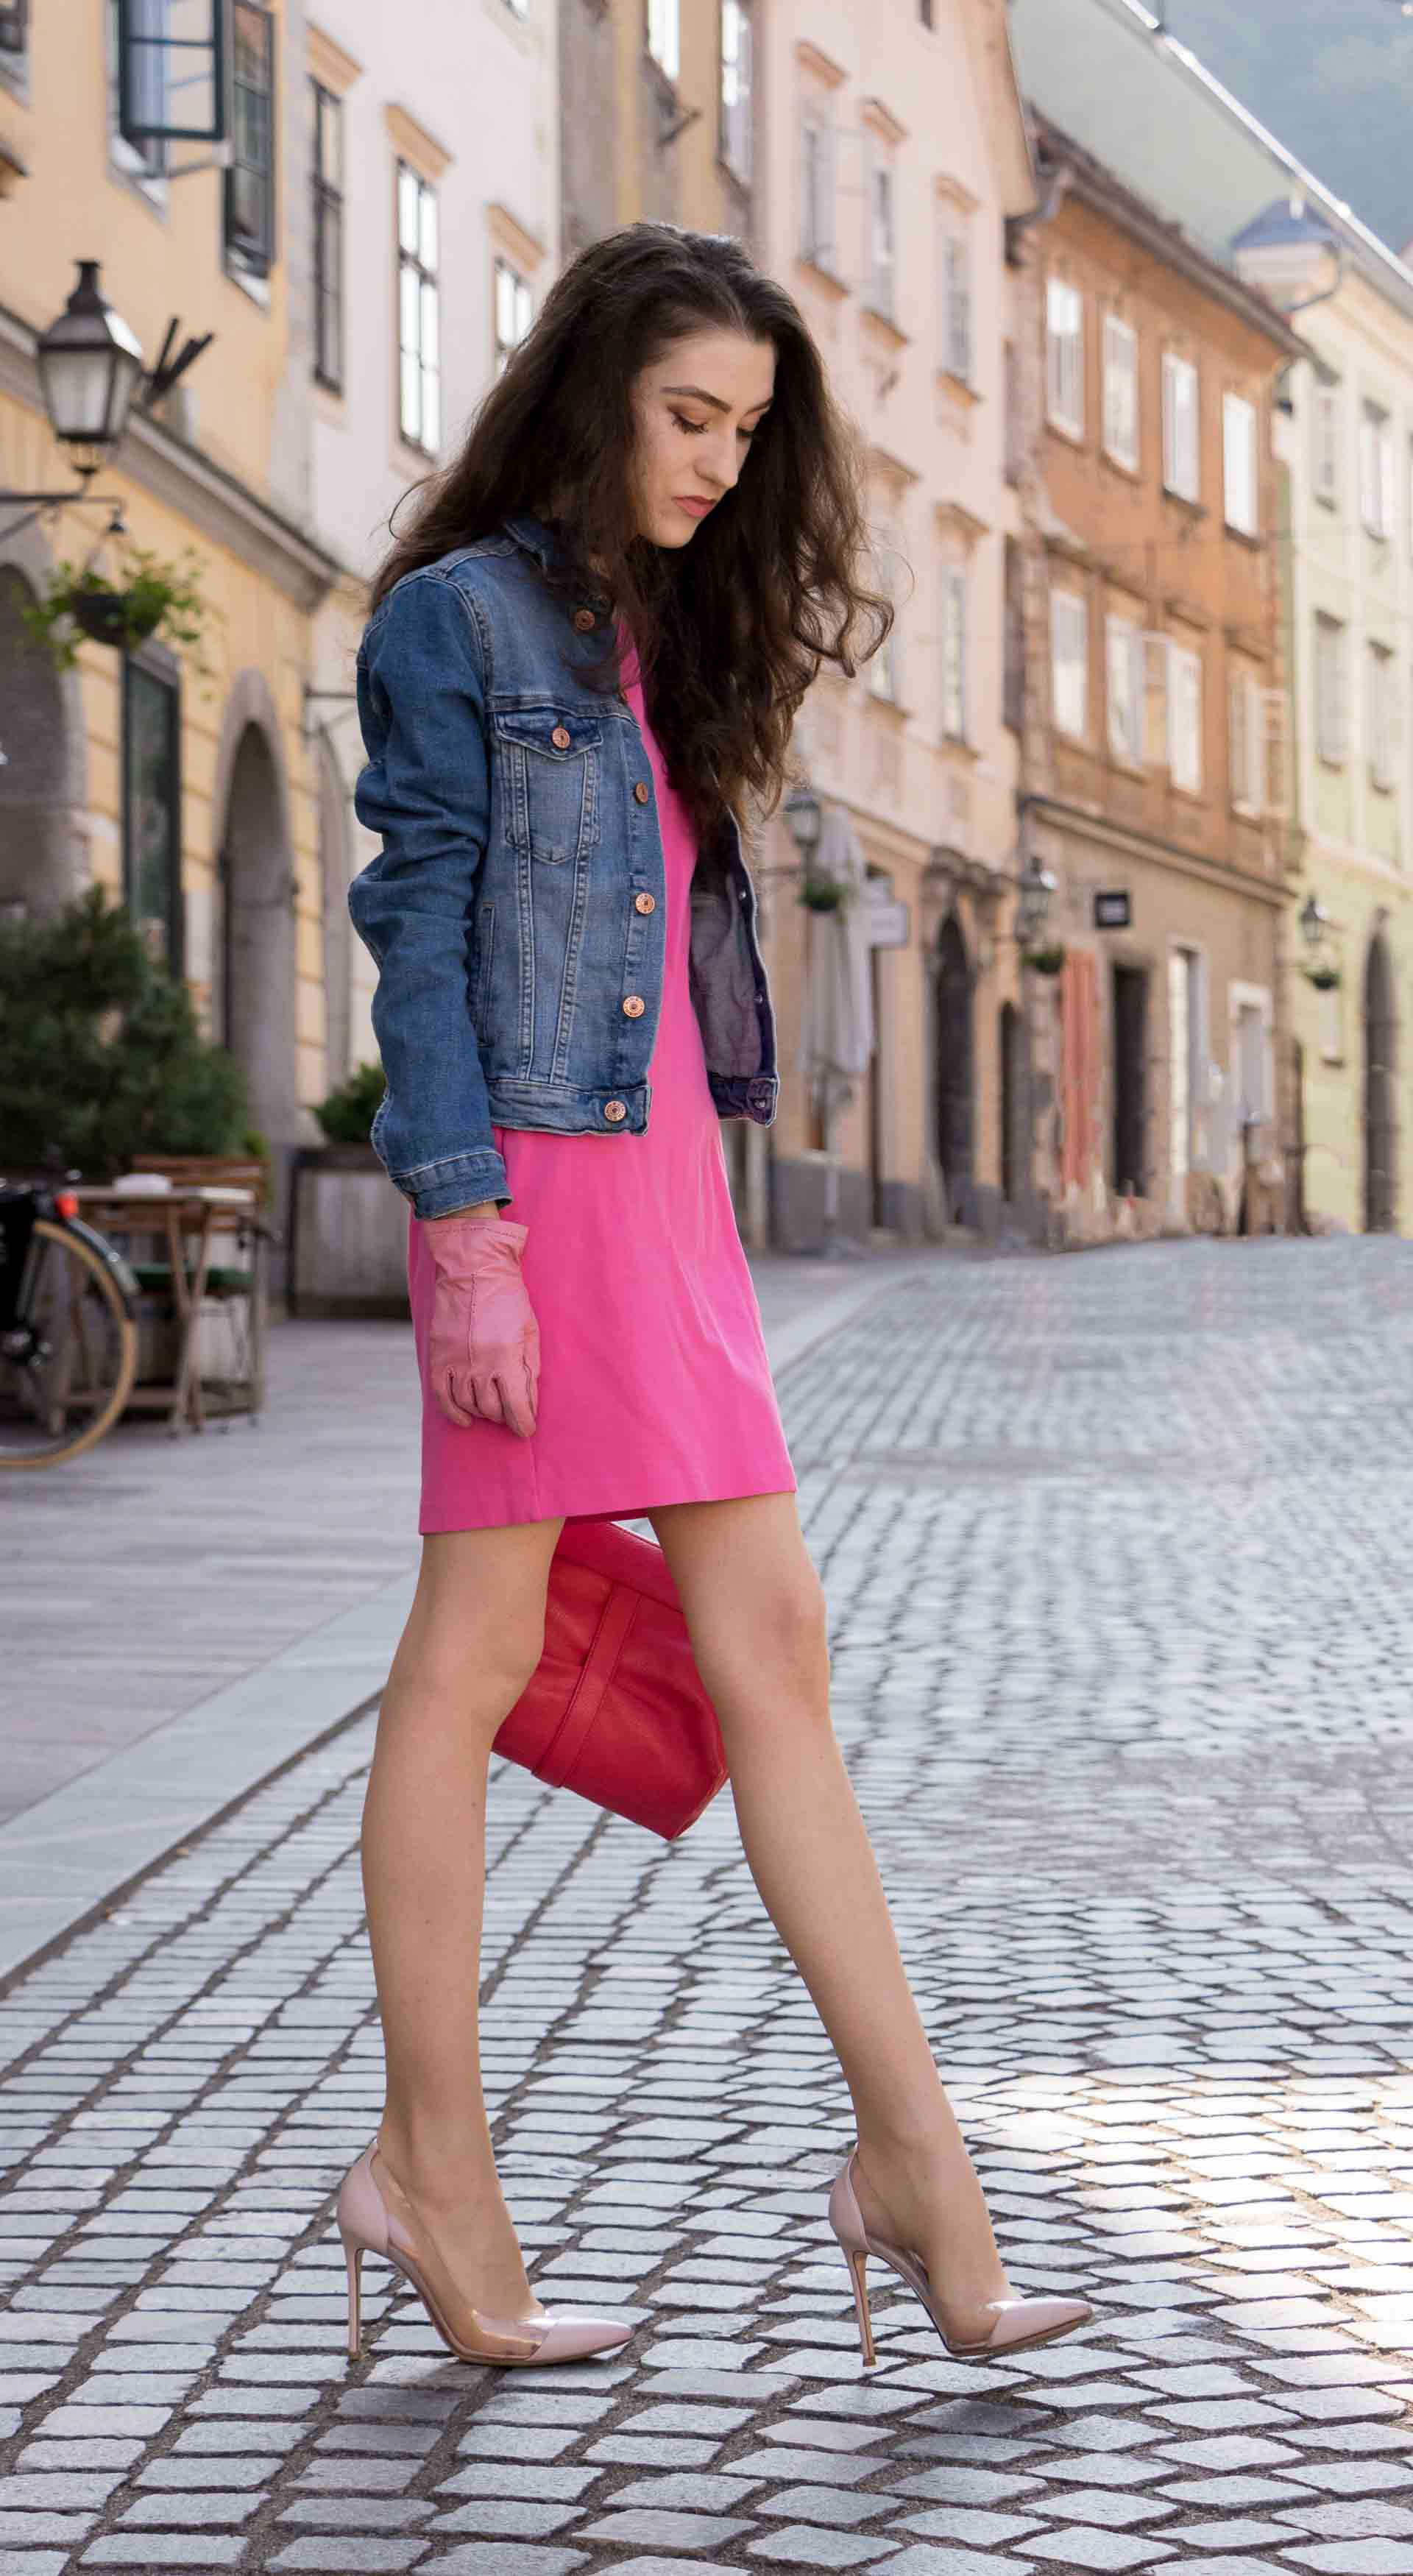 Veronika Lipar Fashion Blogger of Brunette from Wall Street dressed in H&M denim jacket, pink cocktail dress, blush Gianvito Rossi plexi pumps, pink Forzieri gloves, See by Chloé pink top handle bag, Adam Selman x Le Specs white cat eye Lolita sunglasses while walking on the street in Ljubljana